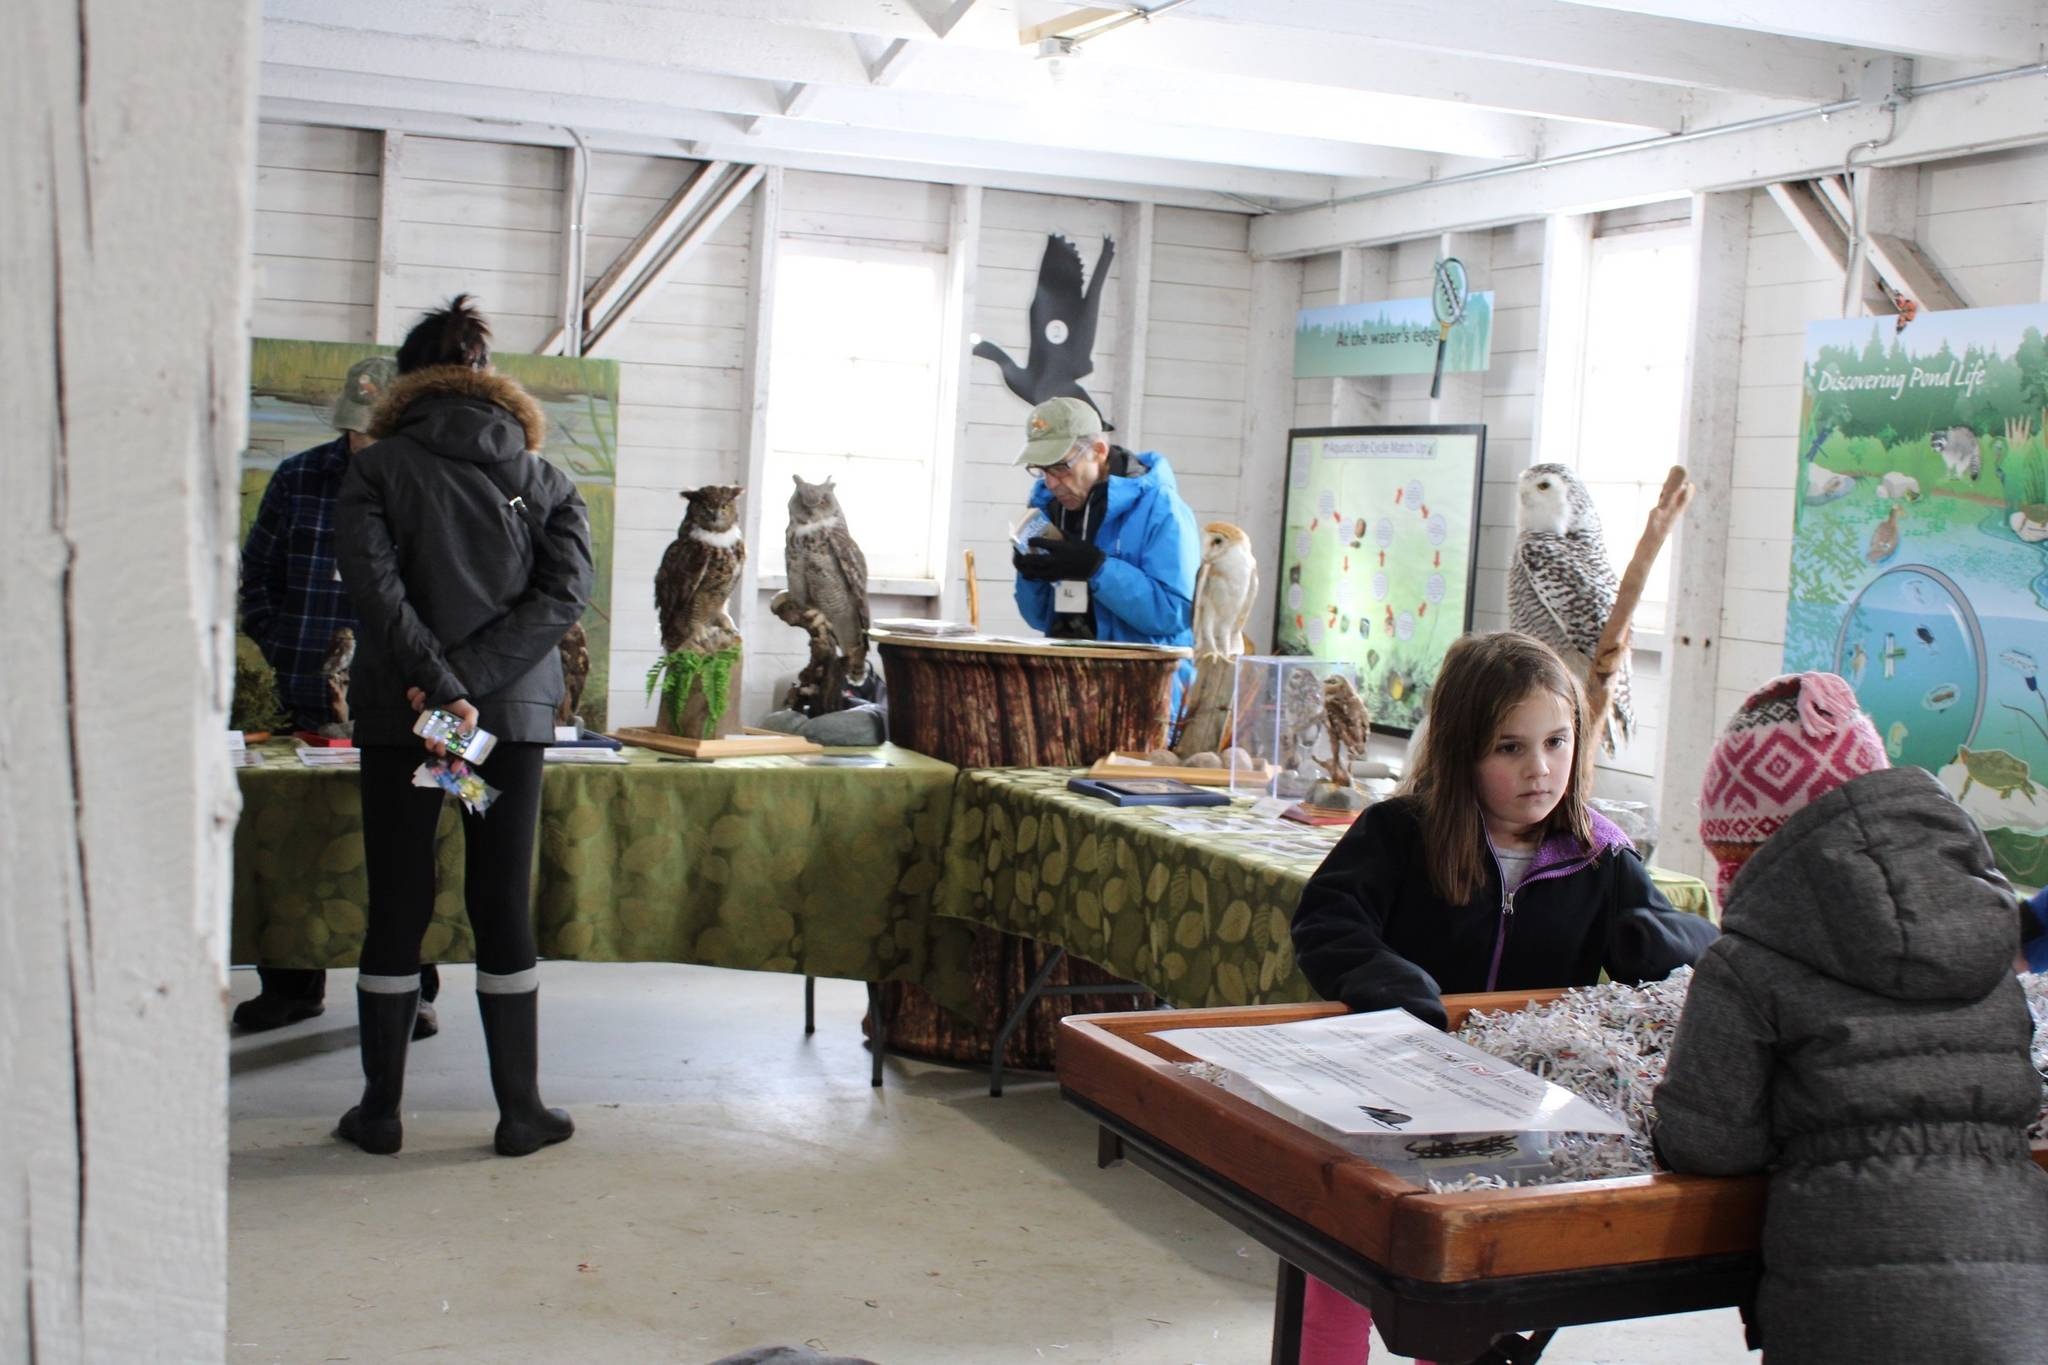 Children enjoyed a day learning and hanging out with owls at Campbell Valley Regional Park on Saturday (Photo by Kieran O'Connor/Black Press Media)